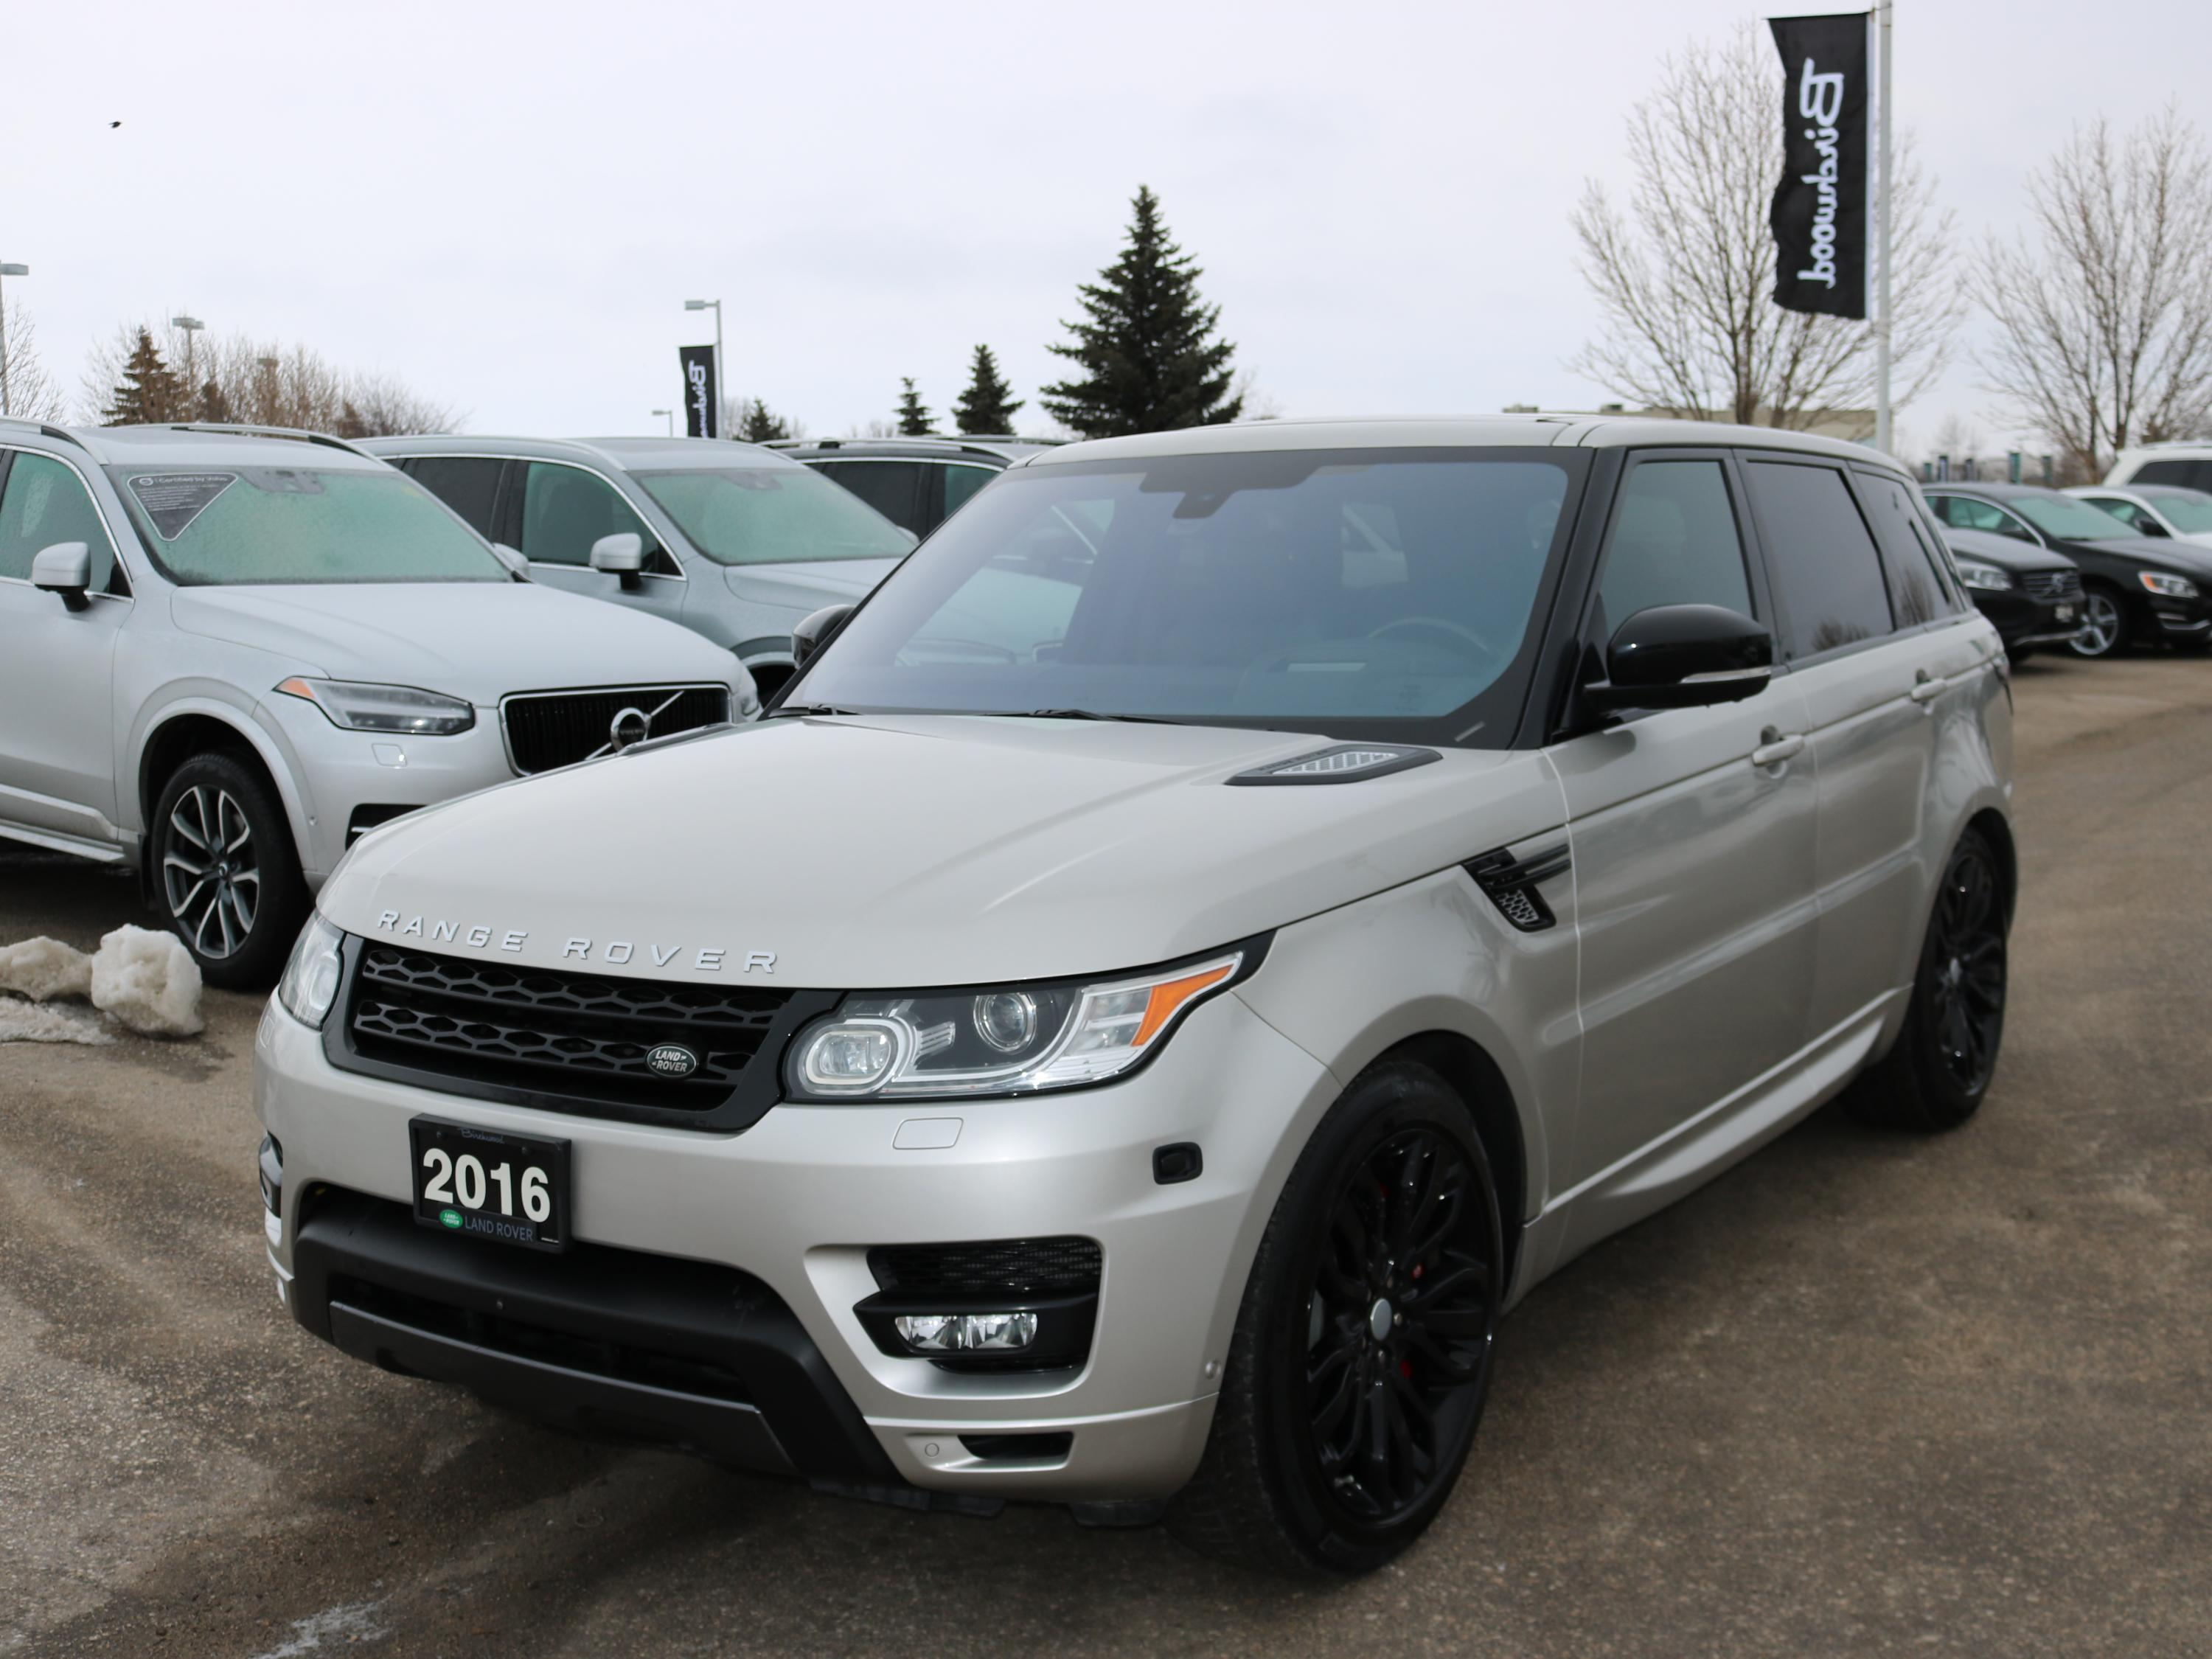 Pre-Owned 2016 Land Rover Range Rover Sport Supercharged March Special: Includes Free Certified Warranty